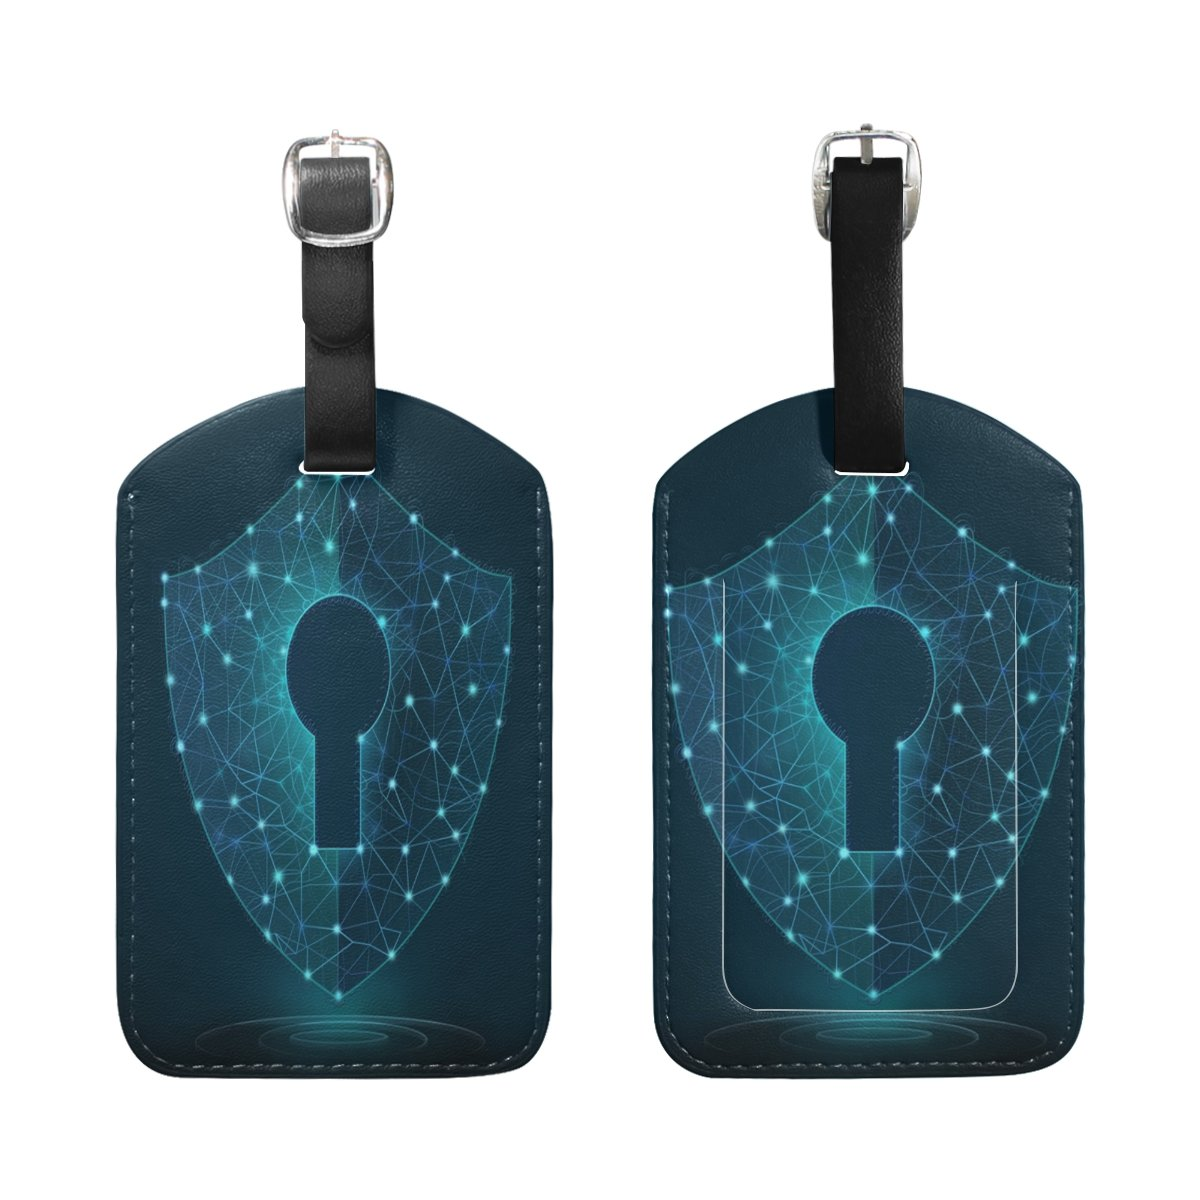 1Pcs Saobao Travel Luggage Tag Cyber Security Guard PU Leather Baggage Suitcase Travel ID Bag Tag